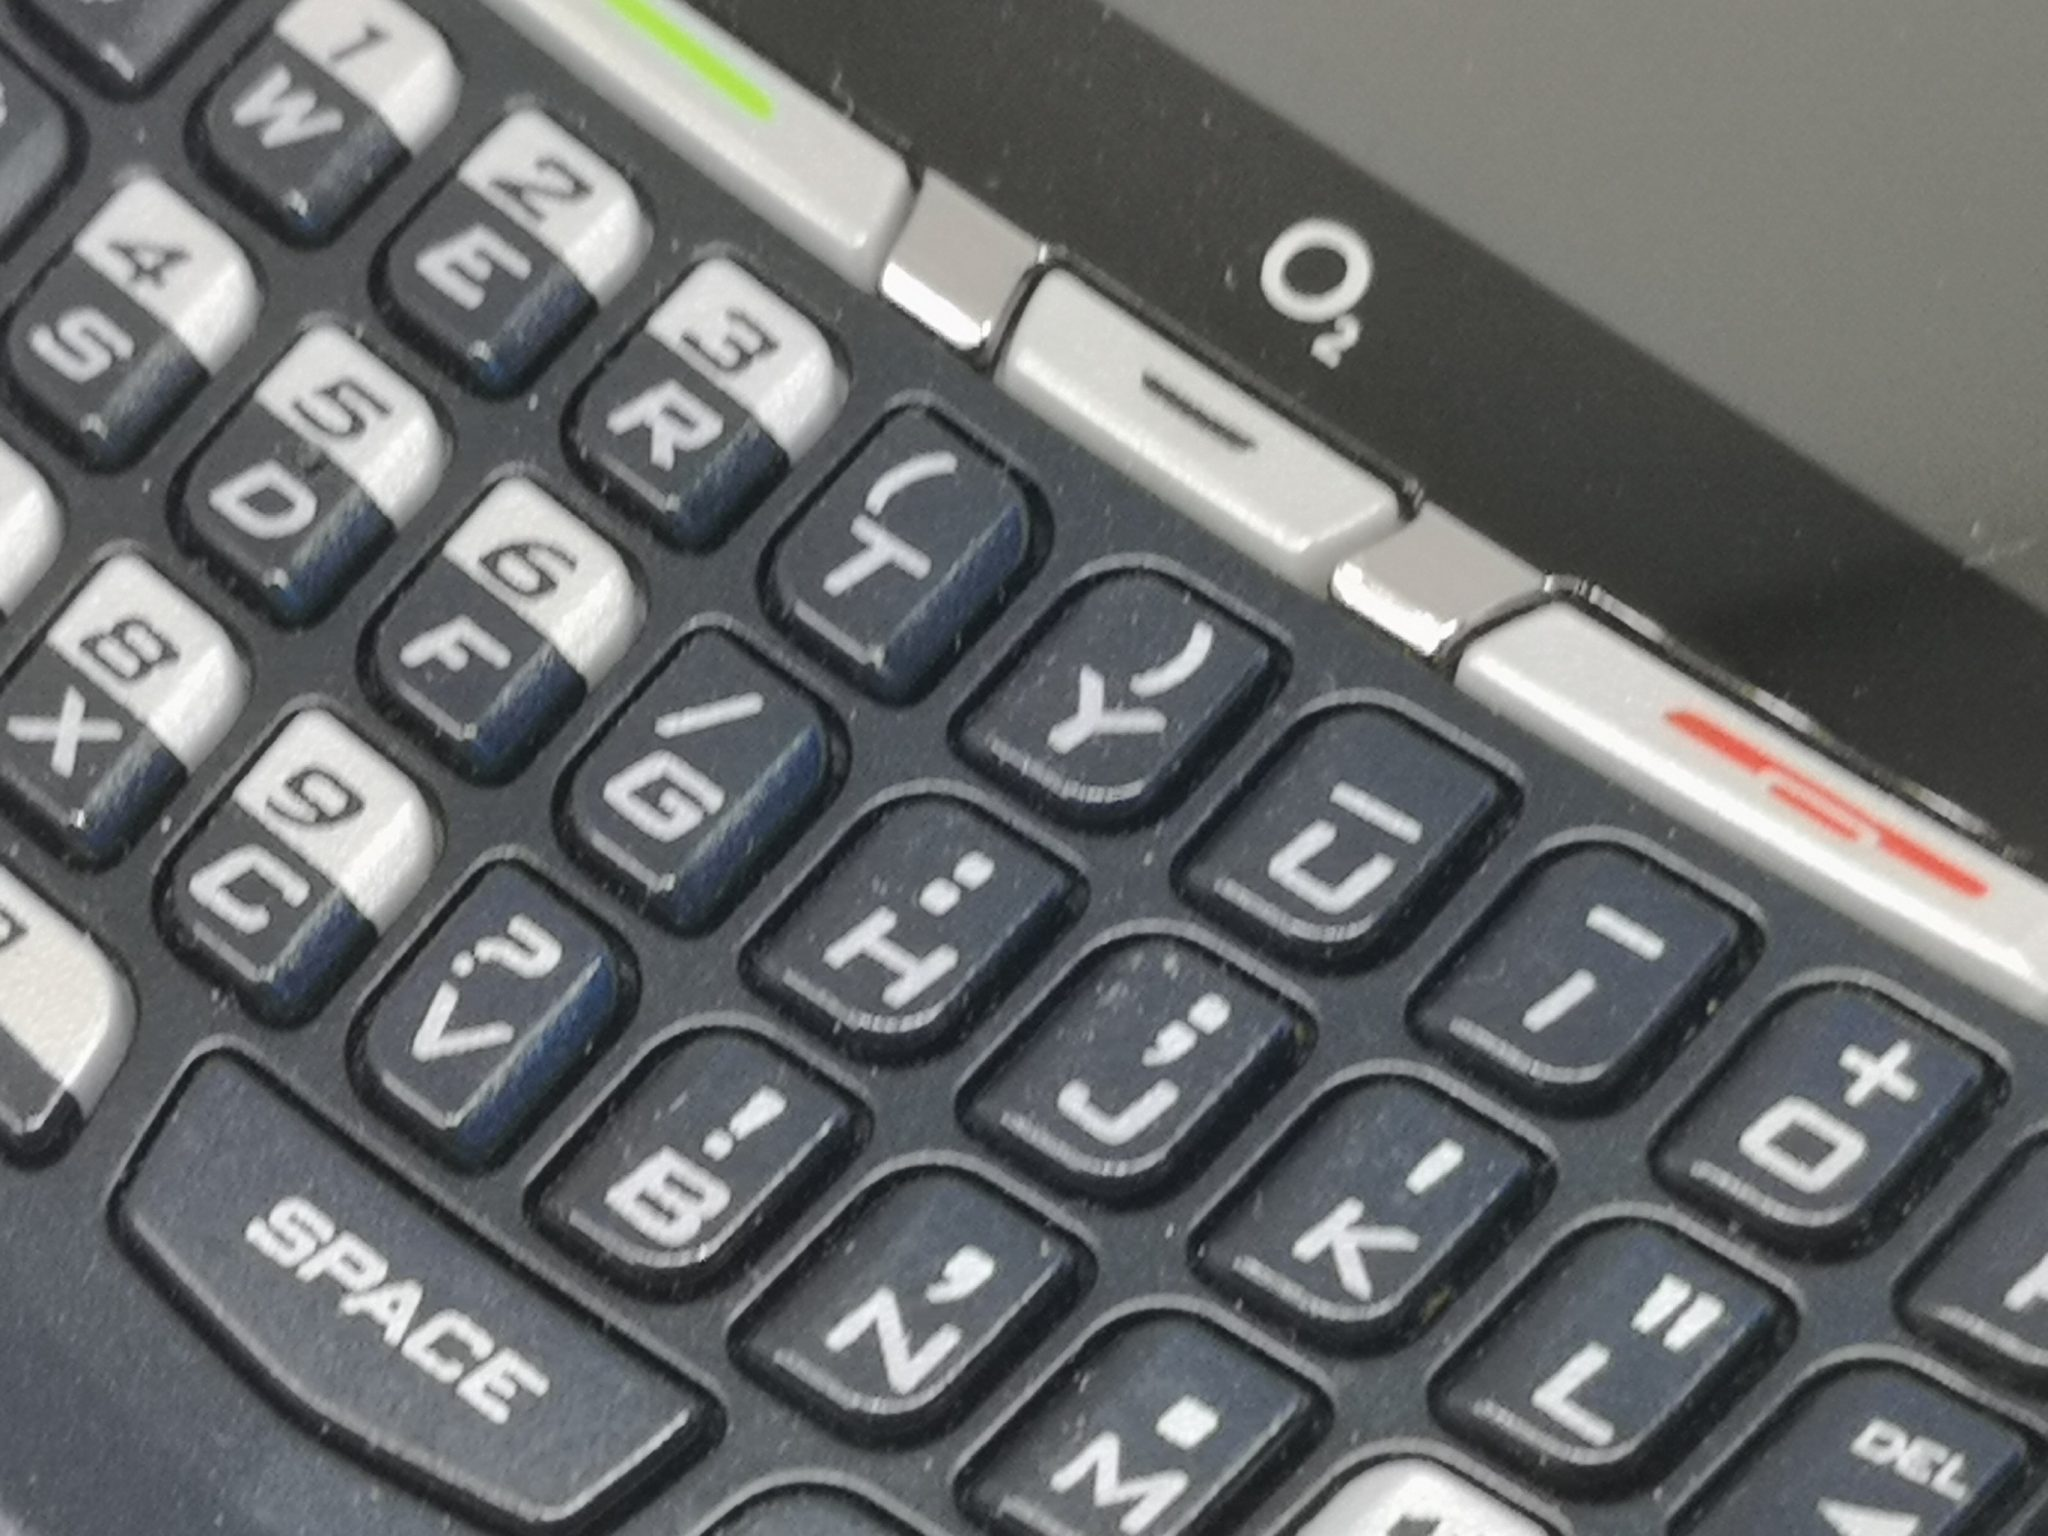 Blackberry 8700g Review - A Precursor to the Classic Mobile Phone